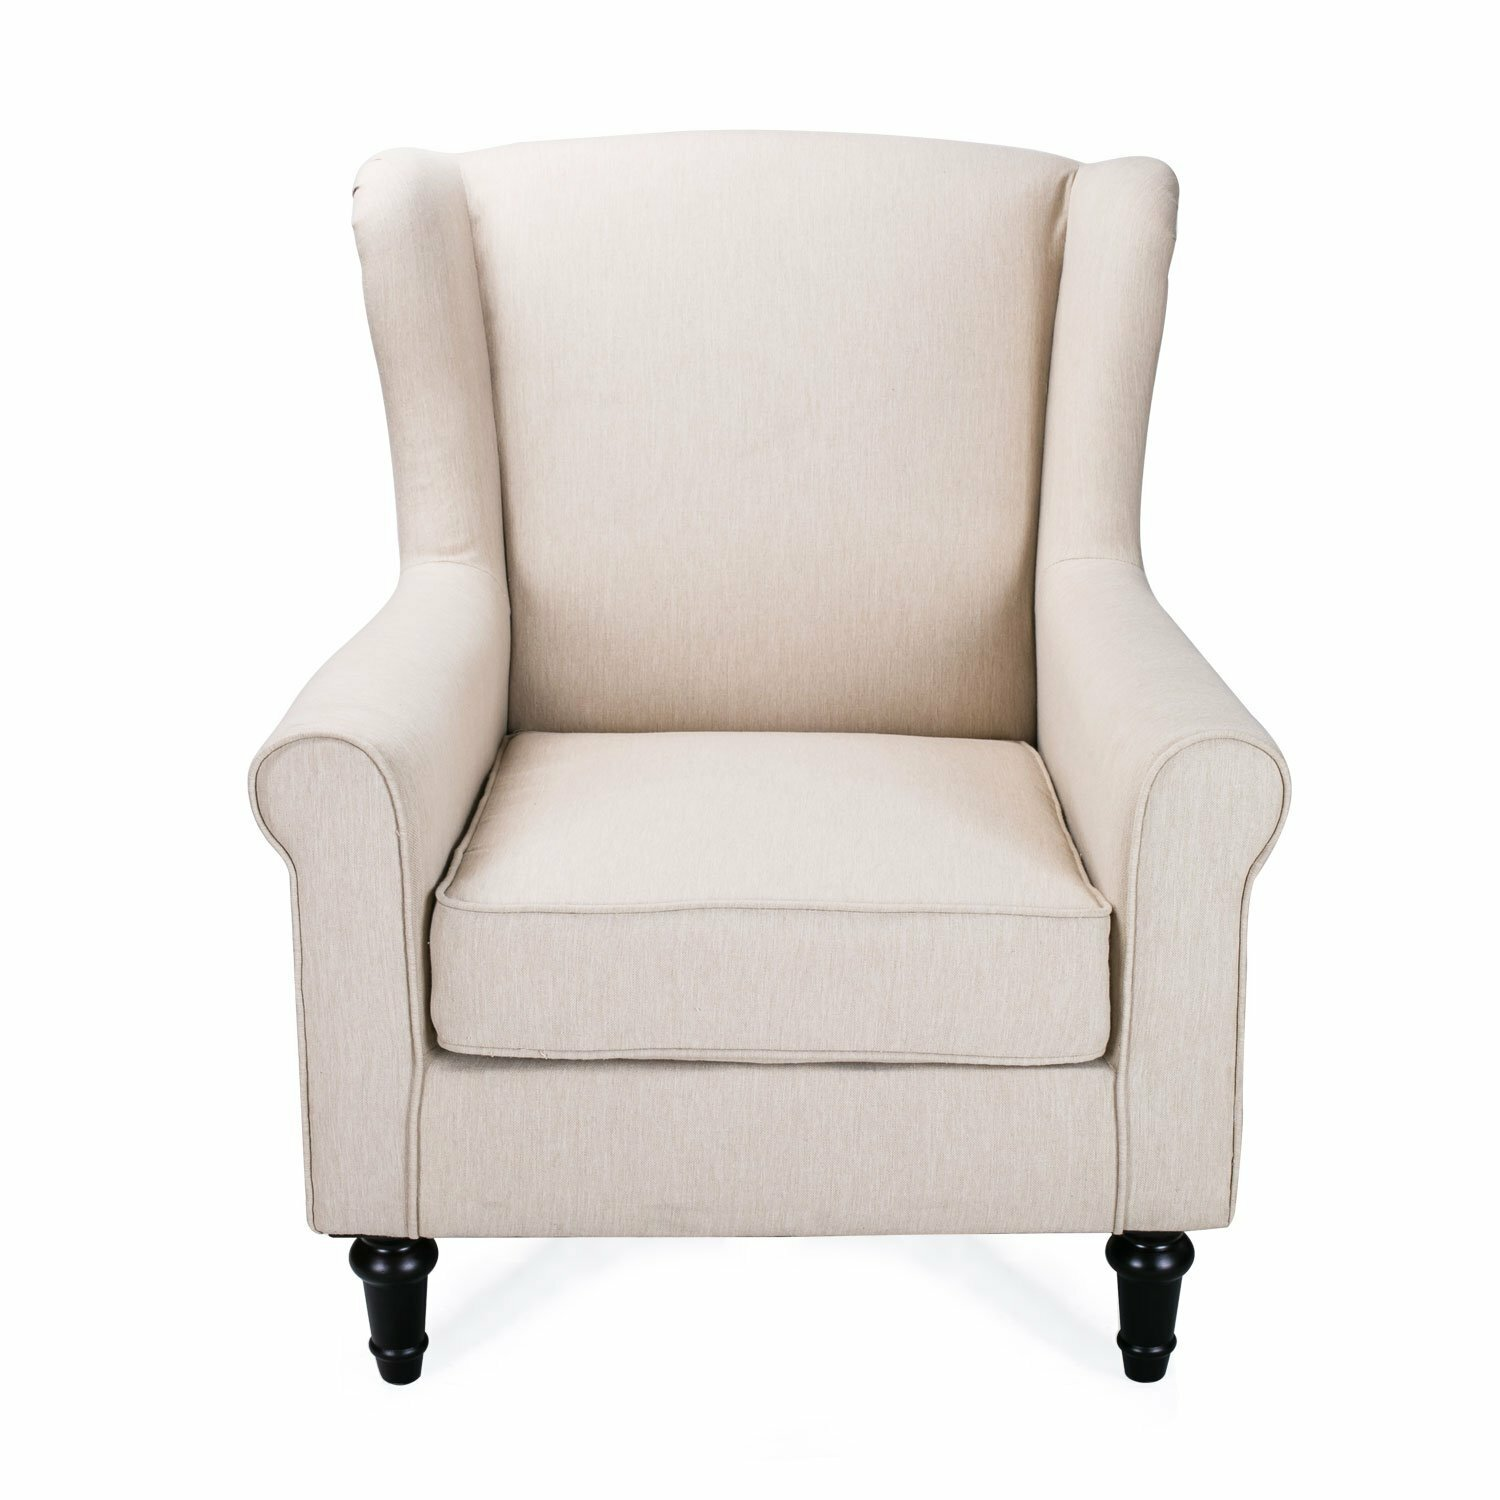 Furniture accent furniture lounge accent chairs adecotrading sku